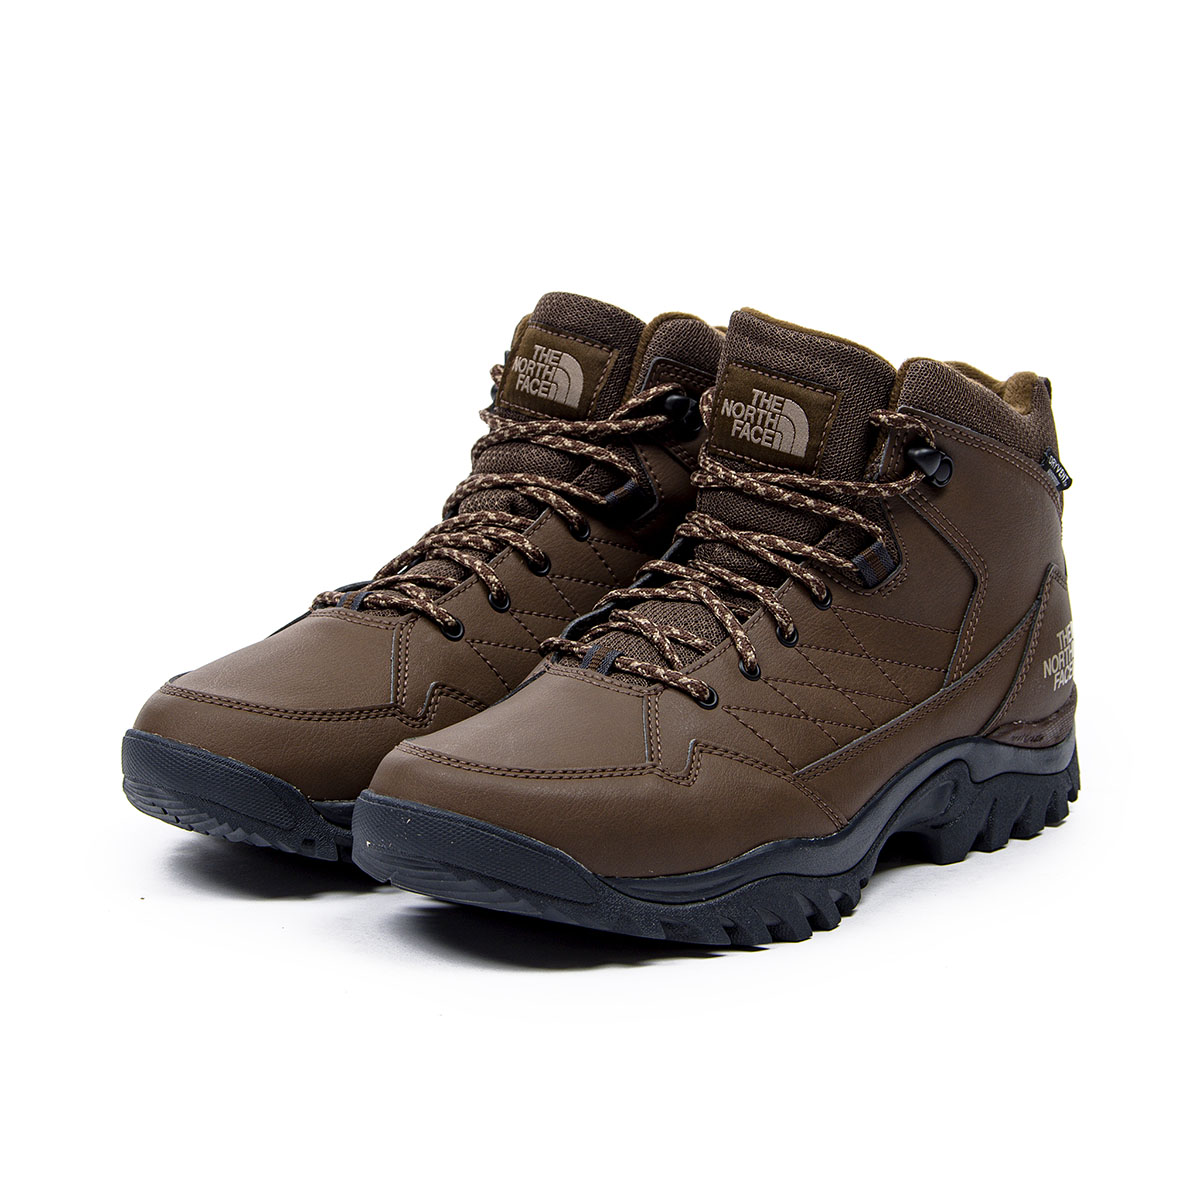 THE NORTH FACE - STORM STRIKE II WATERPROOF BOOTS